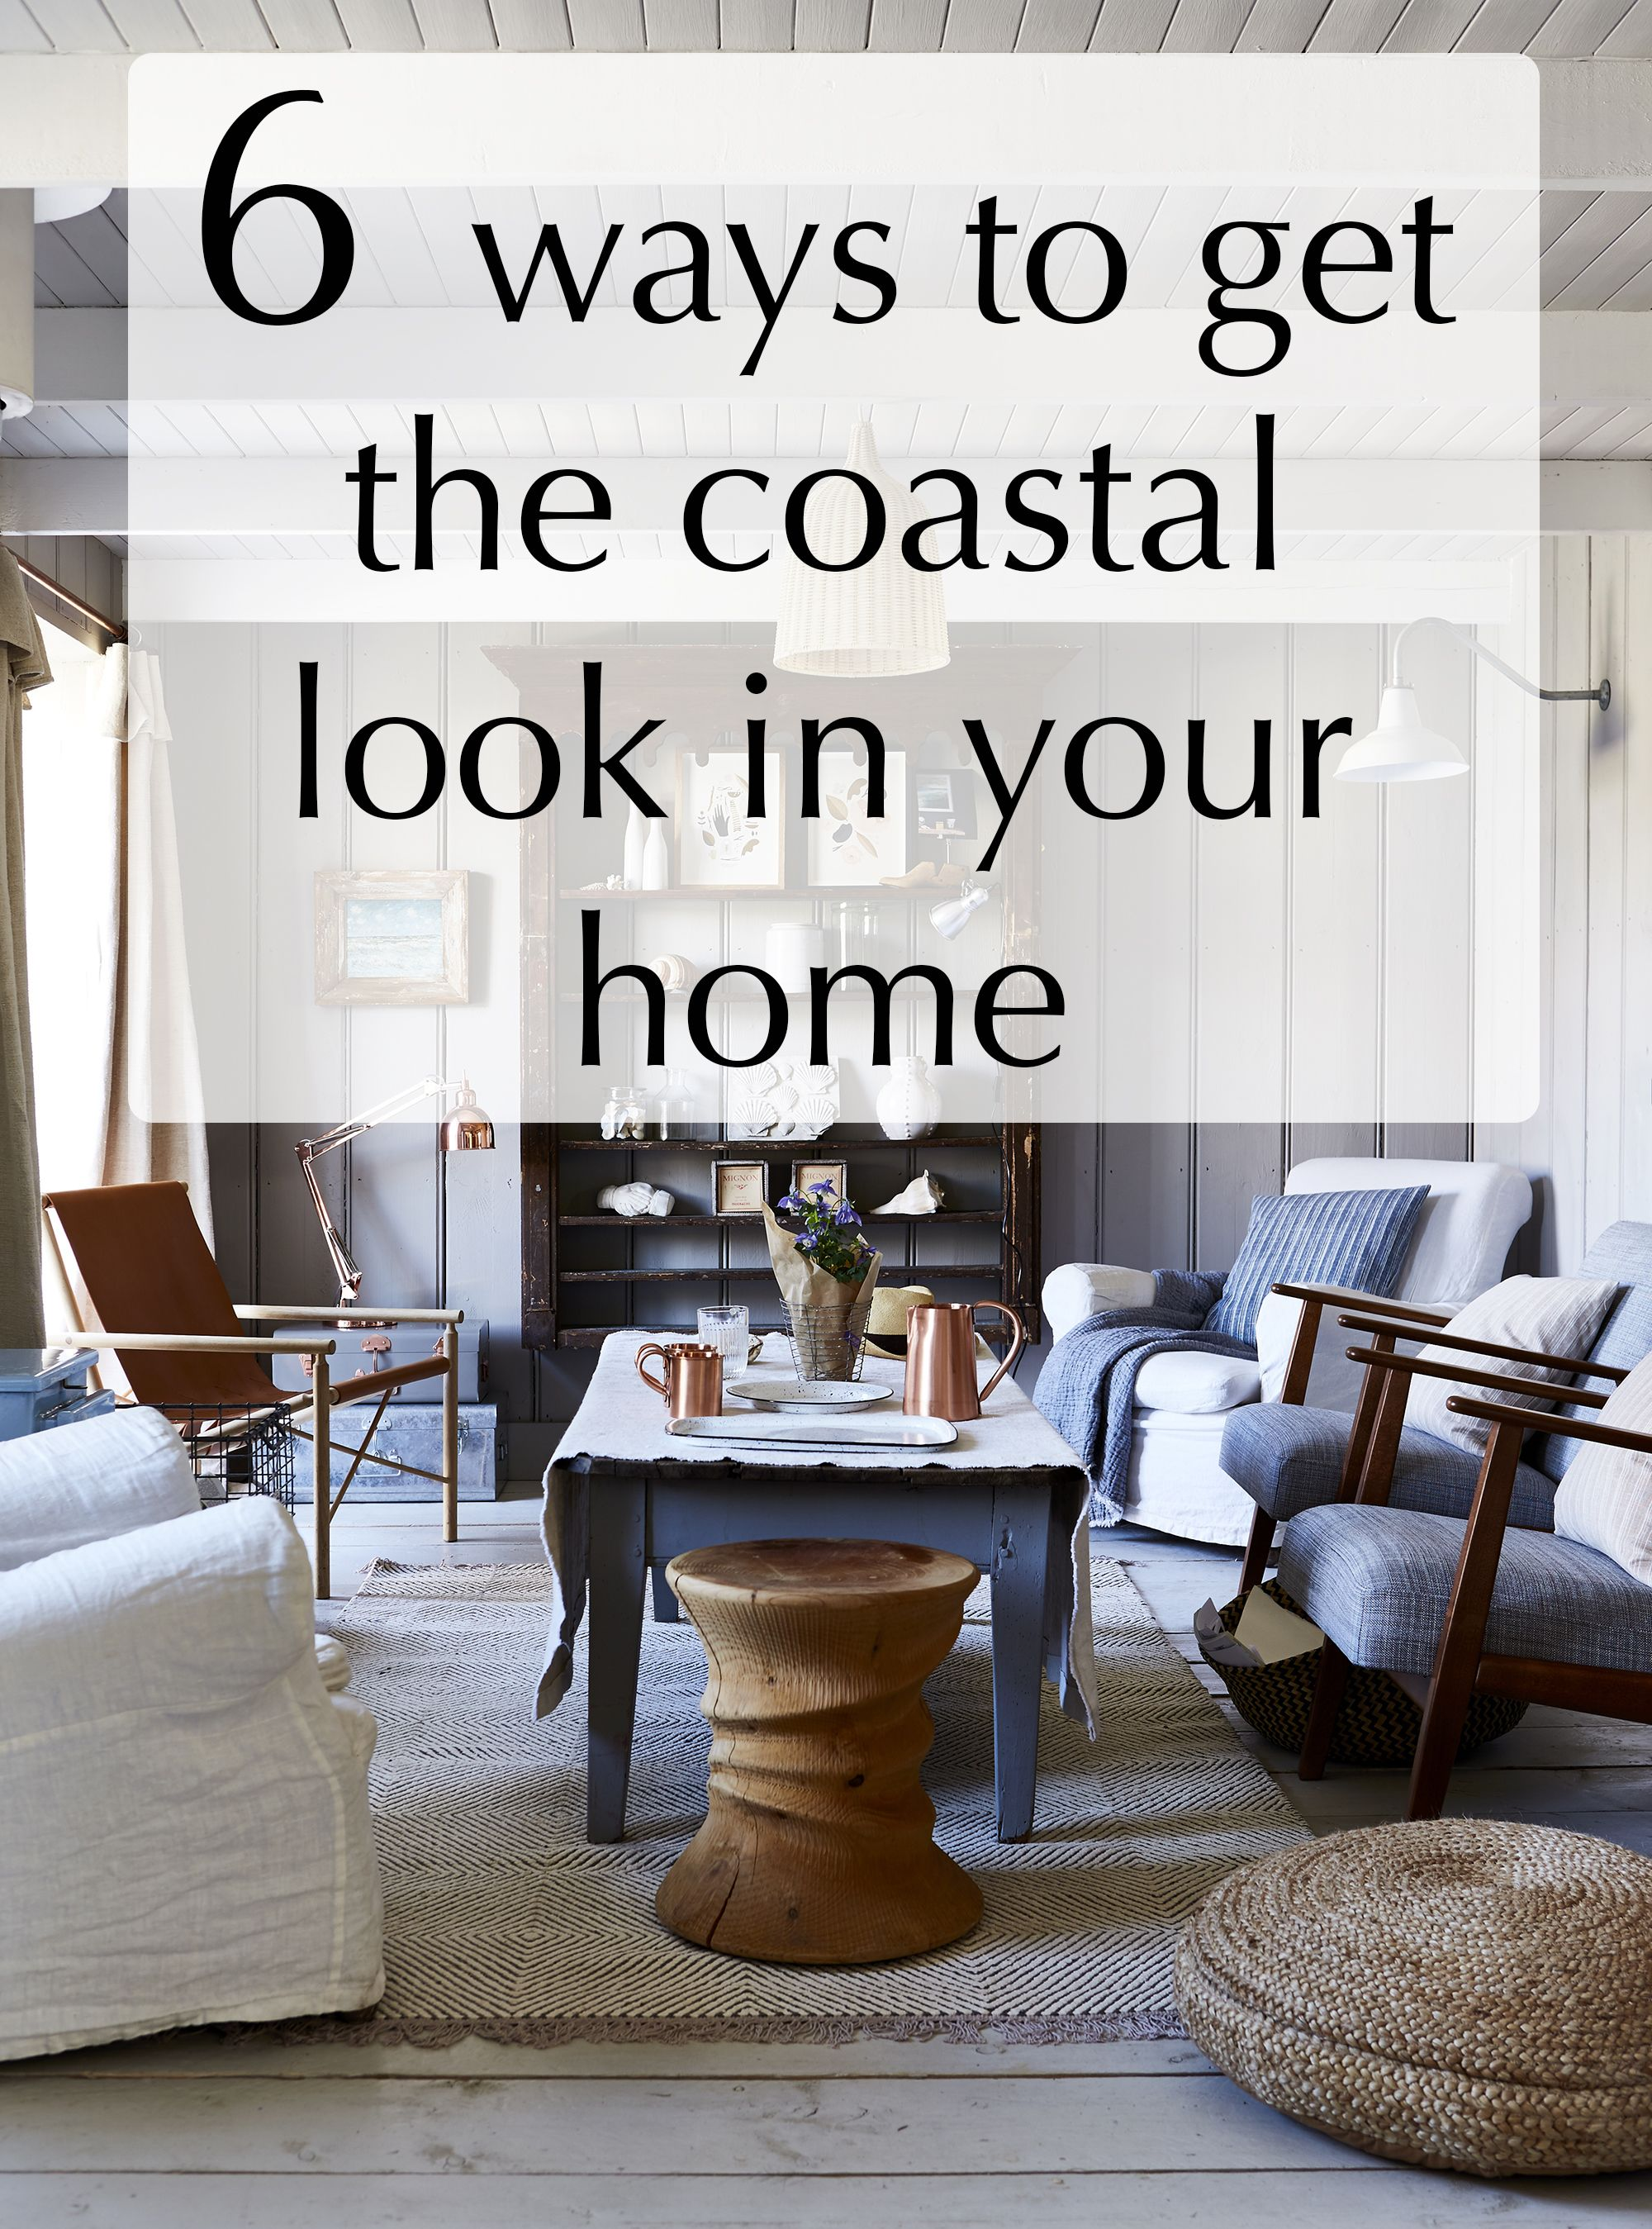 Even if you don't live by the sea, it doesn't mean that you can't enjoy a coastal themed home. Mixing pieces in beautifully weathered materials that evoke the worn textures and faded colours of shoreline finds with simple rustic accessories makes for an original take on the coastal look. We were inspired by this beautiful home in Camber Sands, East Sussex and its authentic coastal interior. This is how the owners achieved their look...